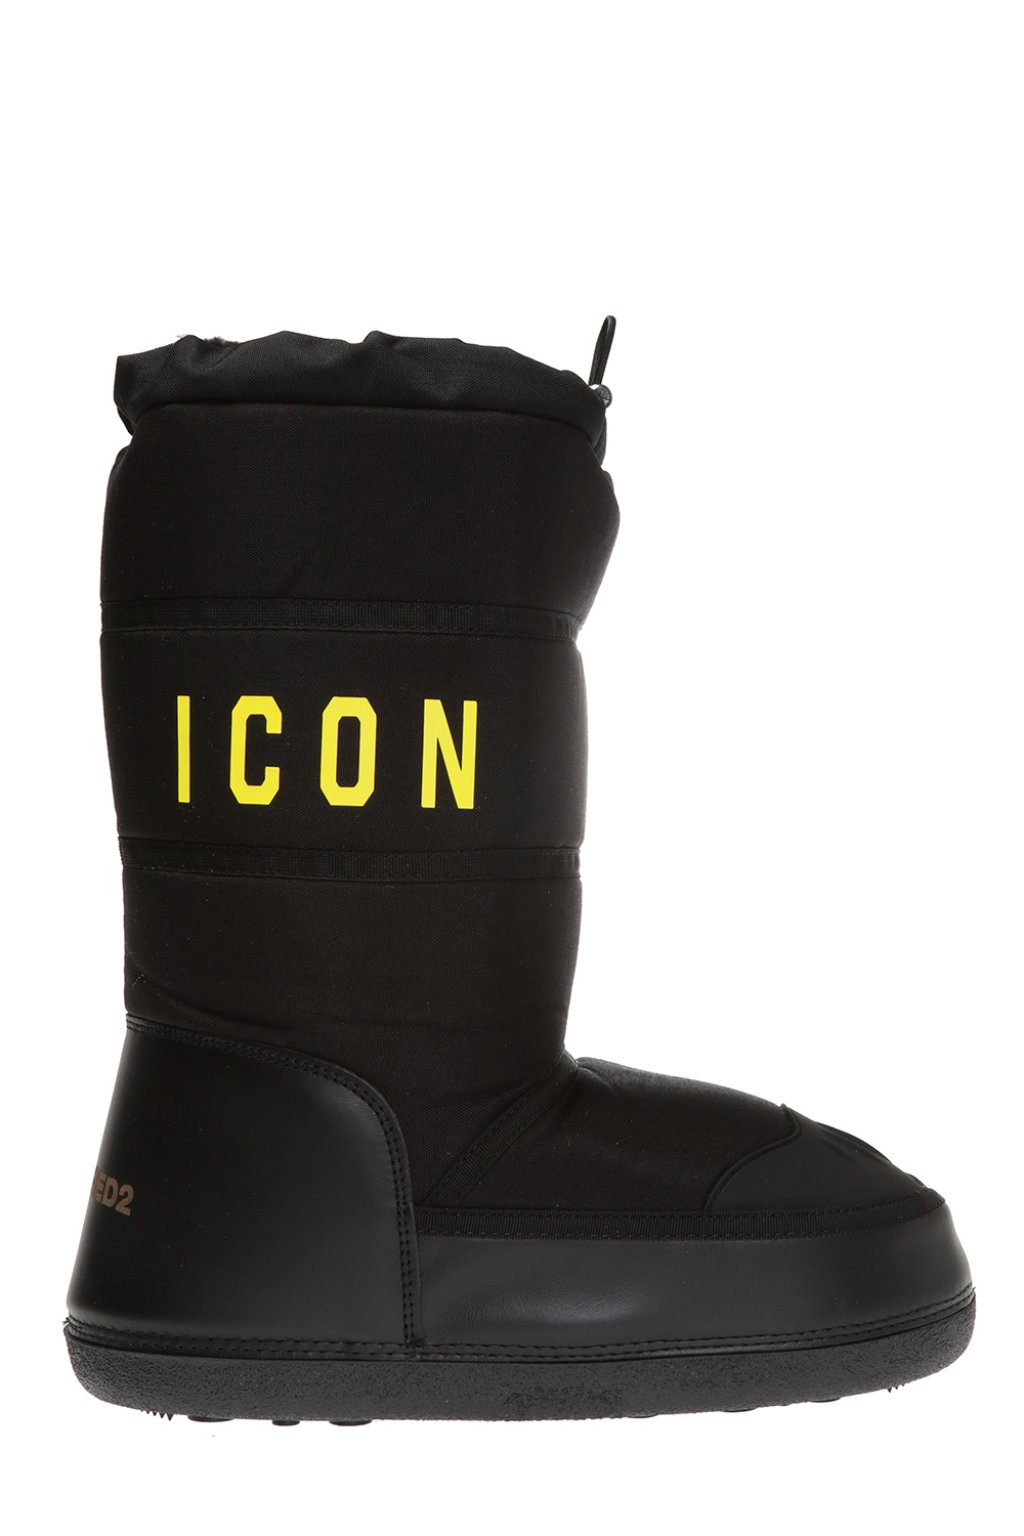 Dsquared2 'Icon' moon boots